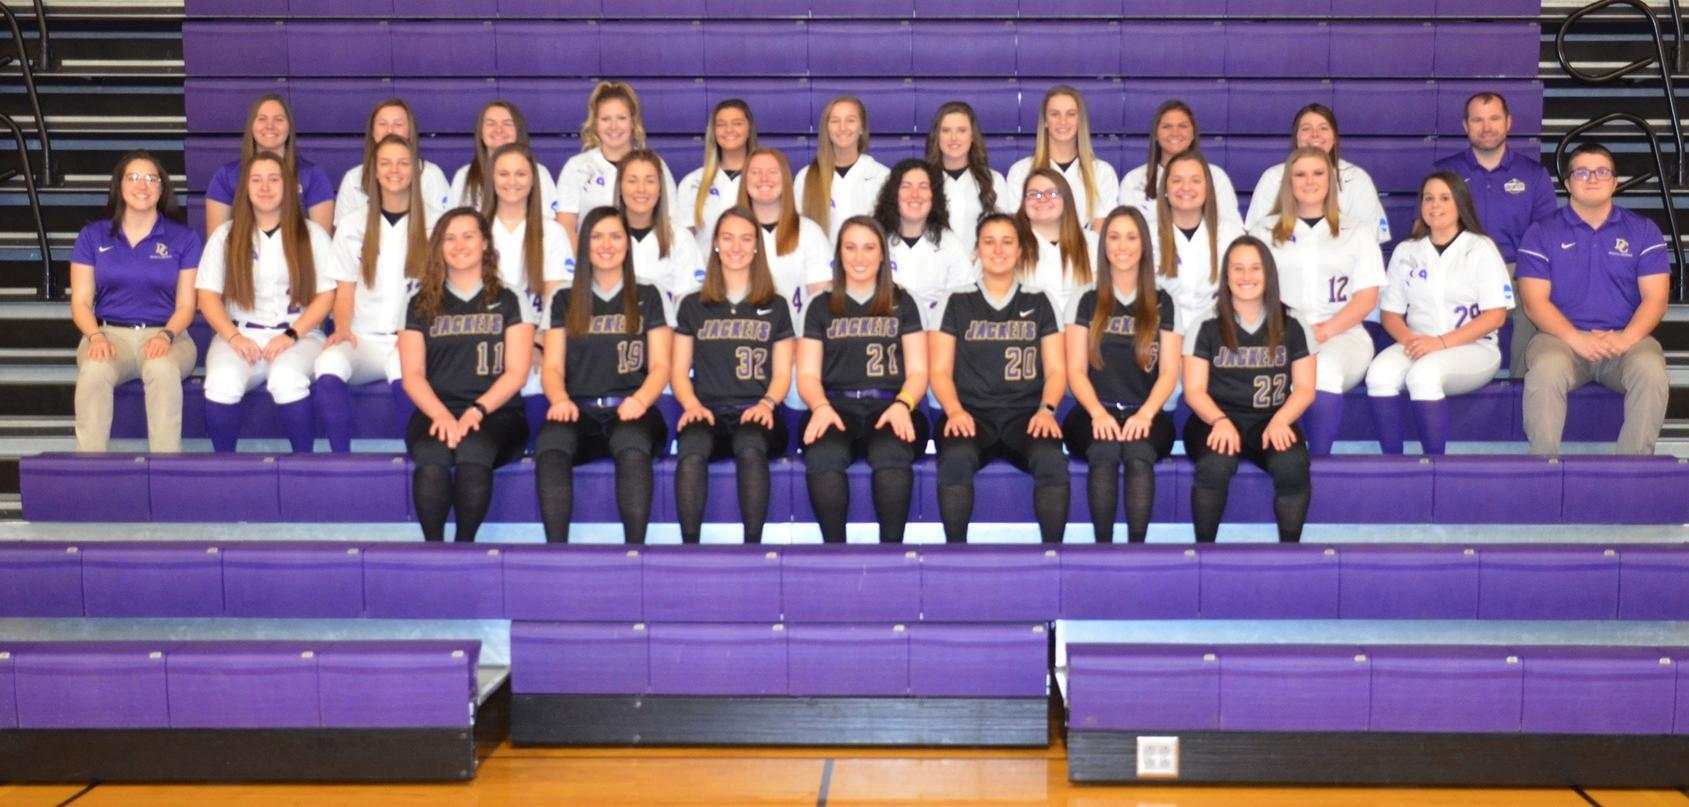 Softball Looks to Balanced Roster in 2019